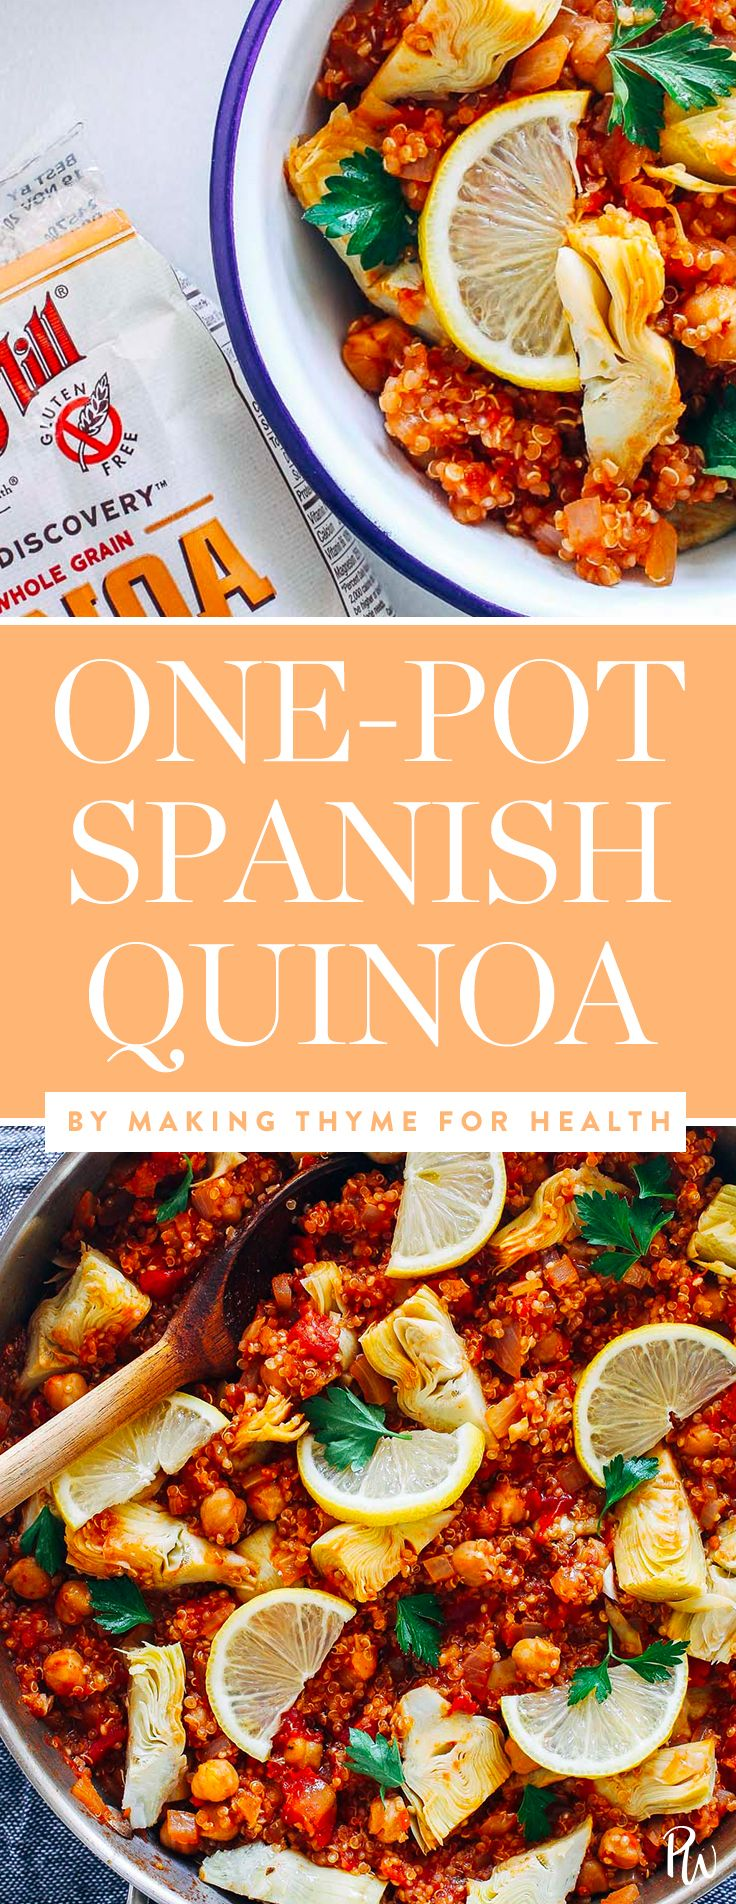 Photo of 15 One-Pot Quinoa Recipes That Are Ready in 30 Minutes